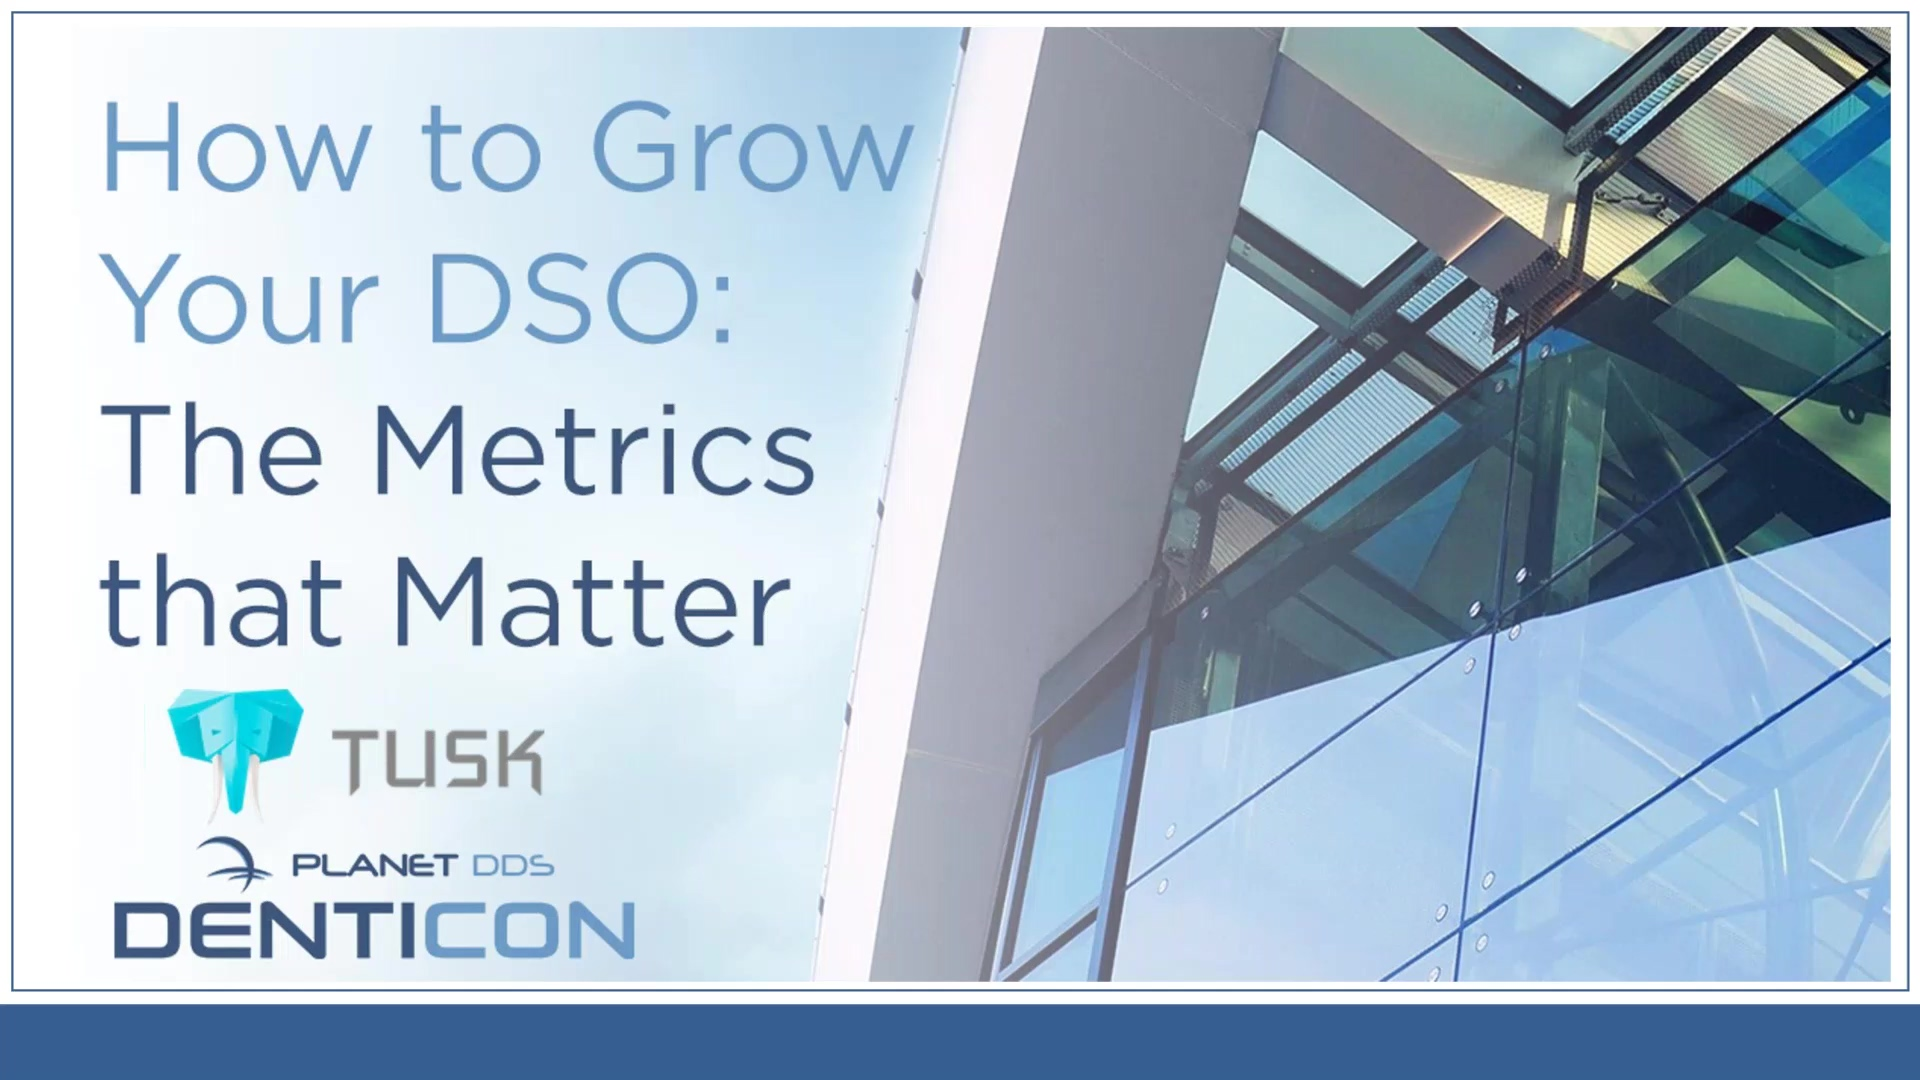 How to Grow Your DSO - The Metrics that Matter